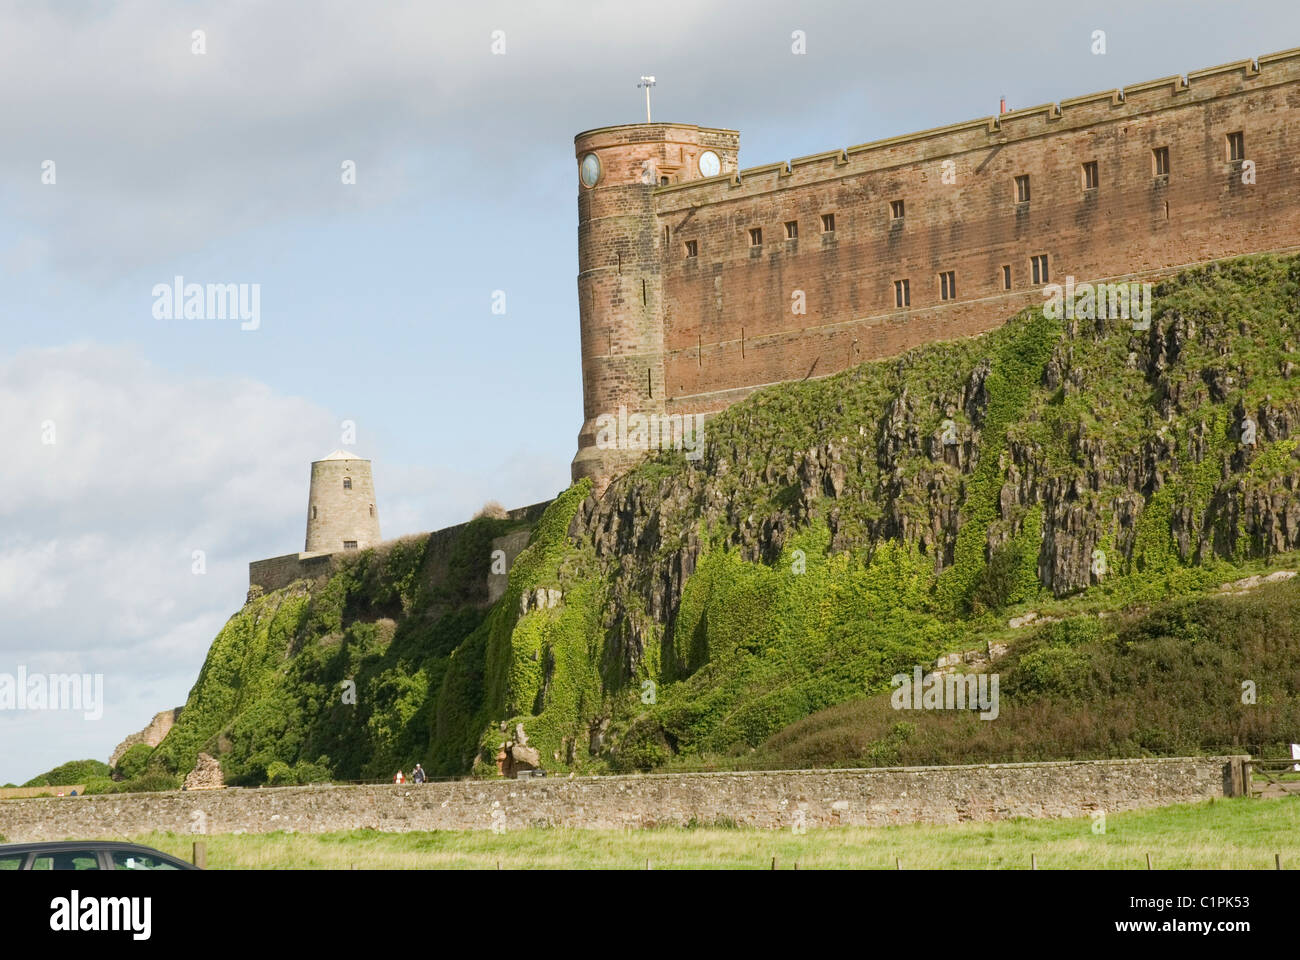 England, Northumberland, Bamburgh Castle on basalt outcrop - Stock Image